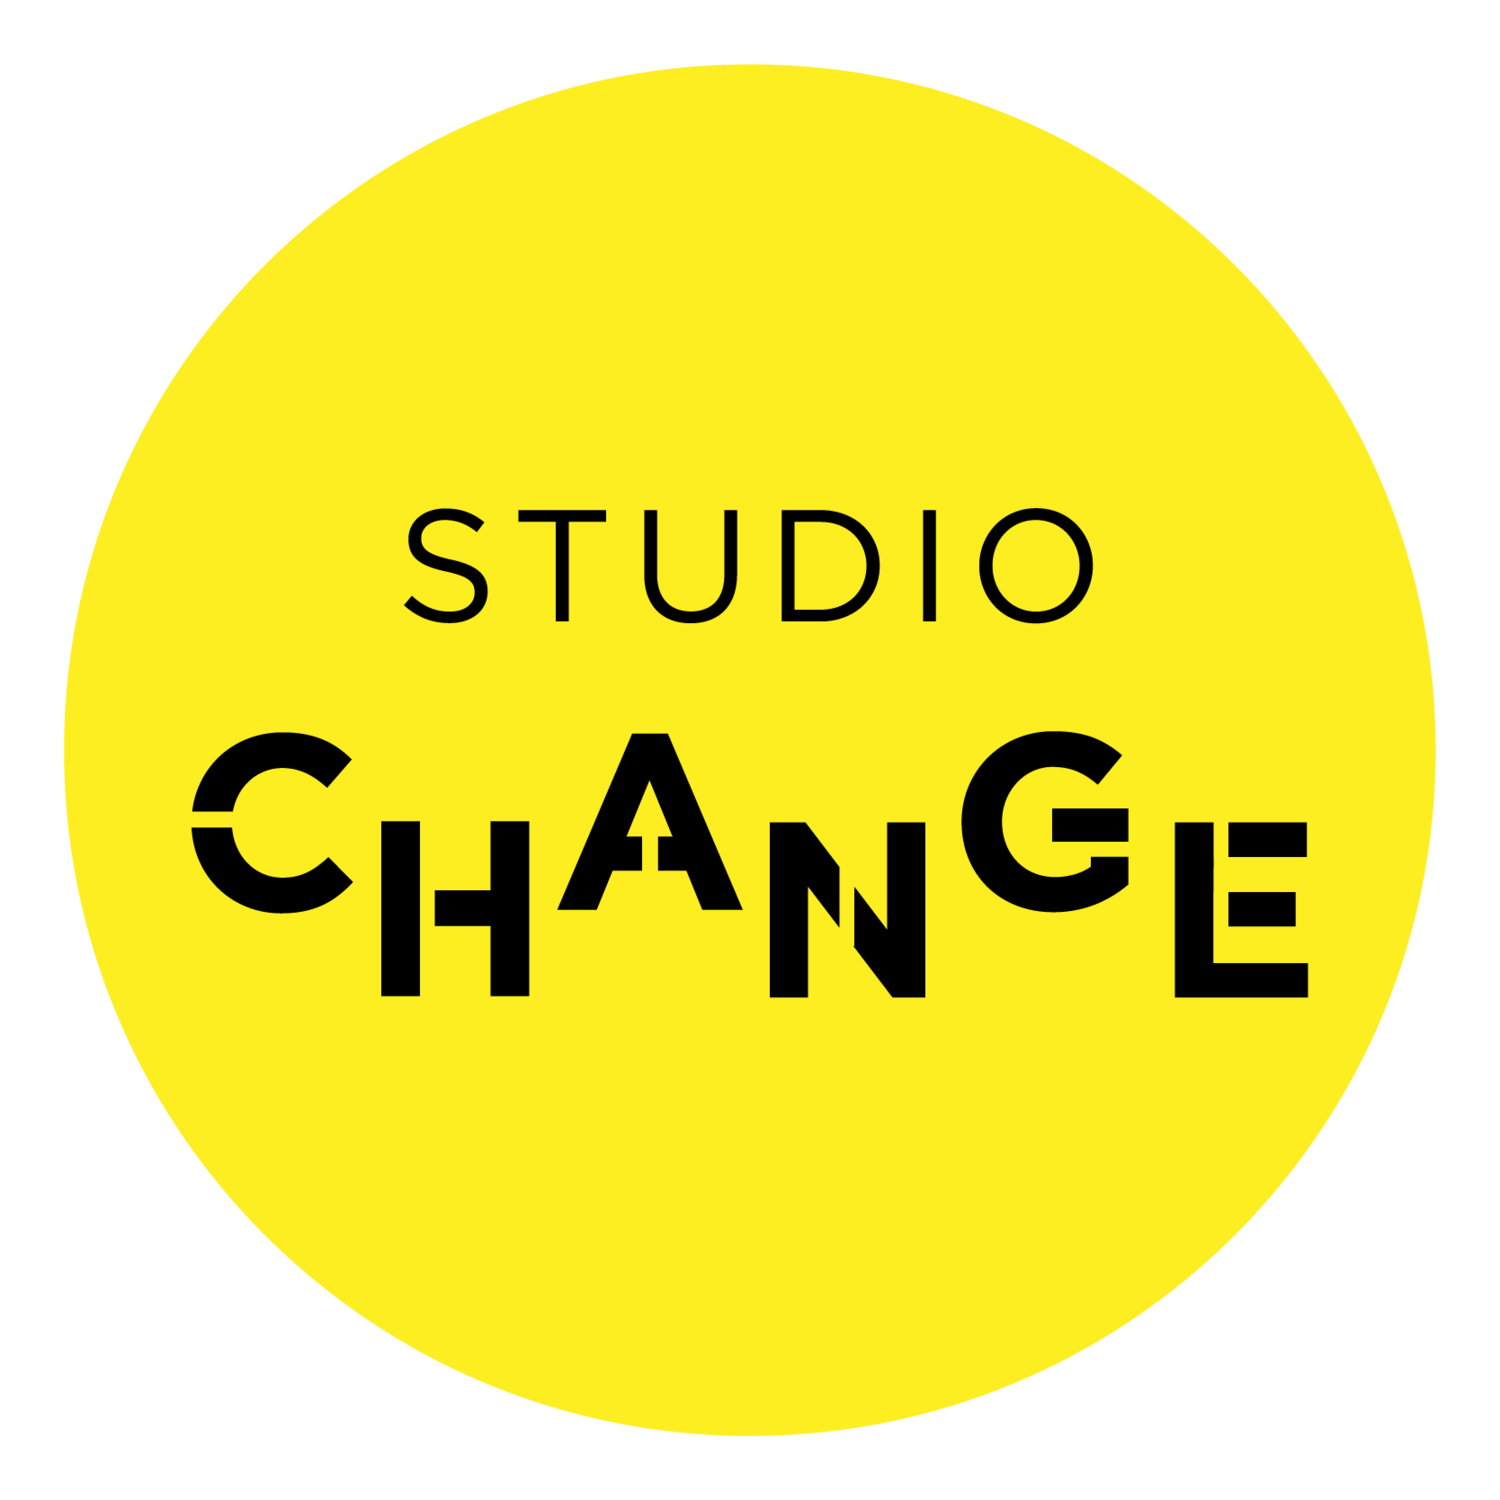 Studio Change | Design Sprints in London